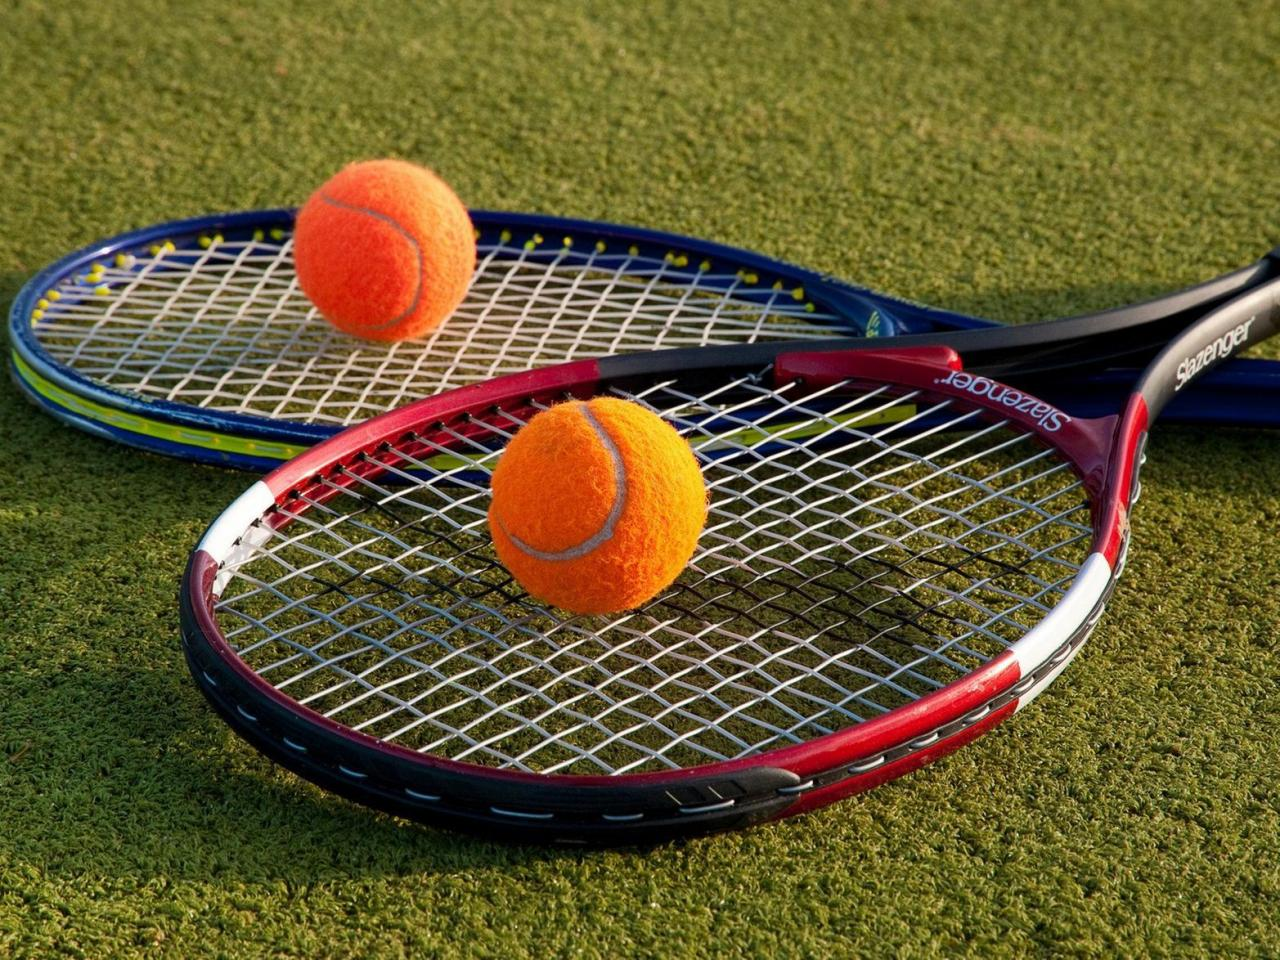 Upsurge in tennis participation at Linlithgow Sports Club since lockdown easing | Linlithgow Journal and Gazette